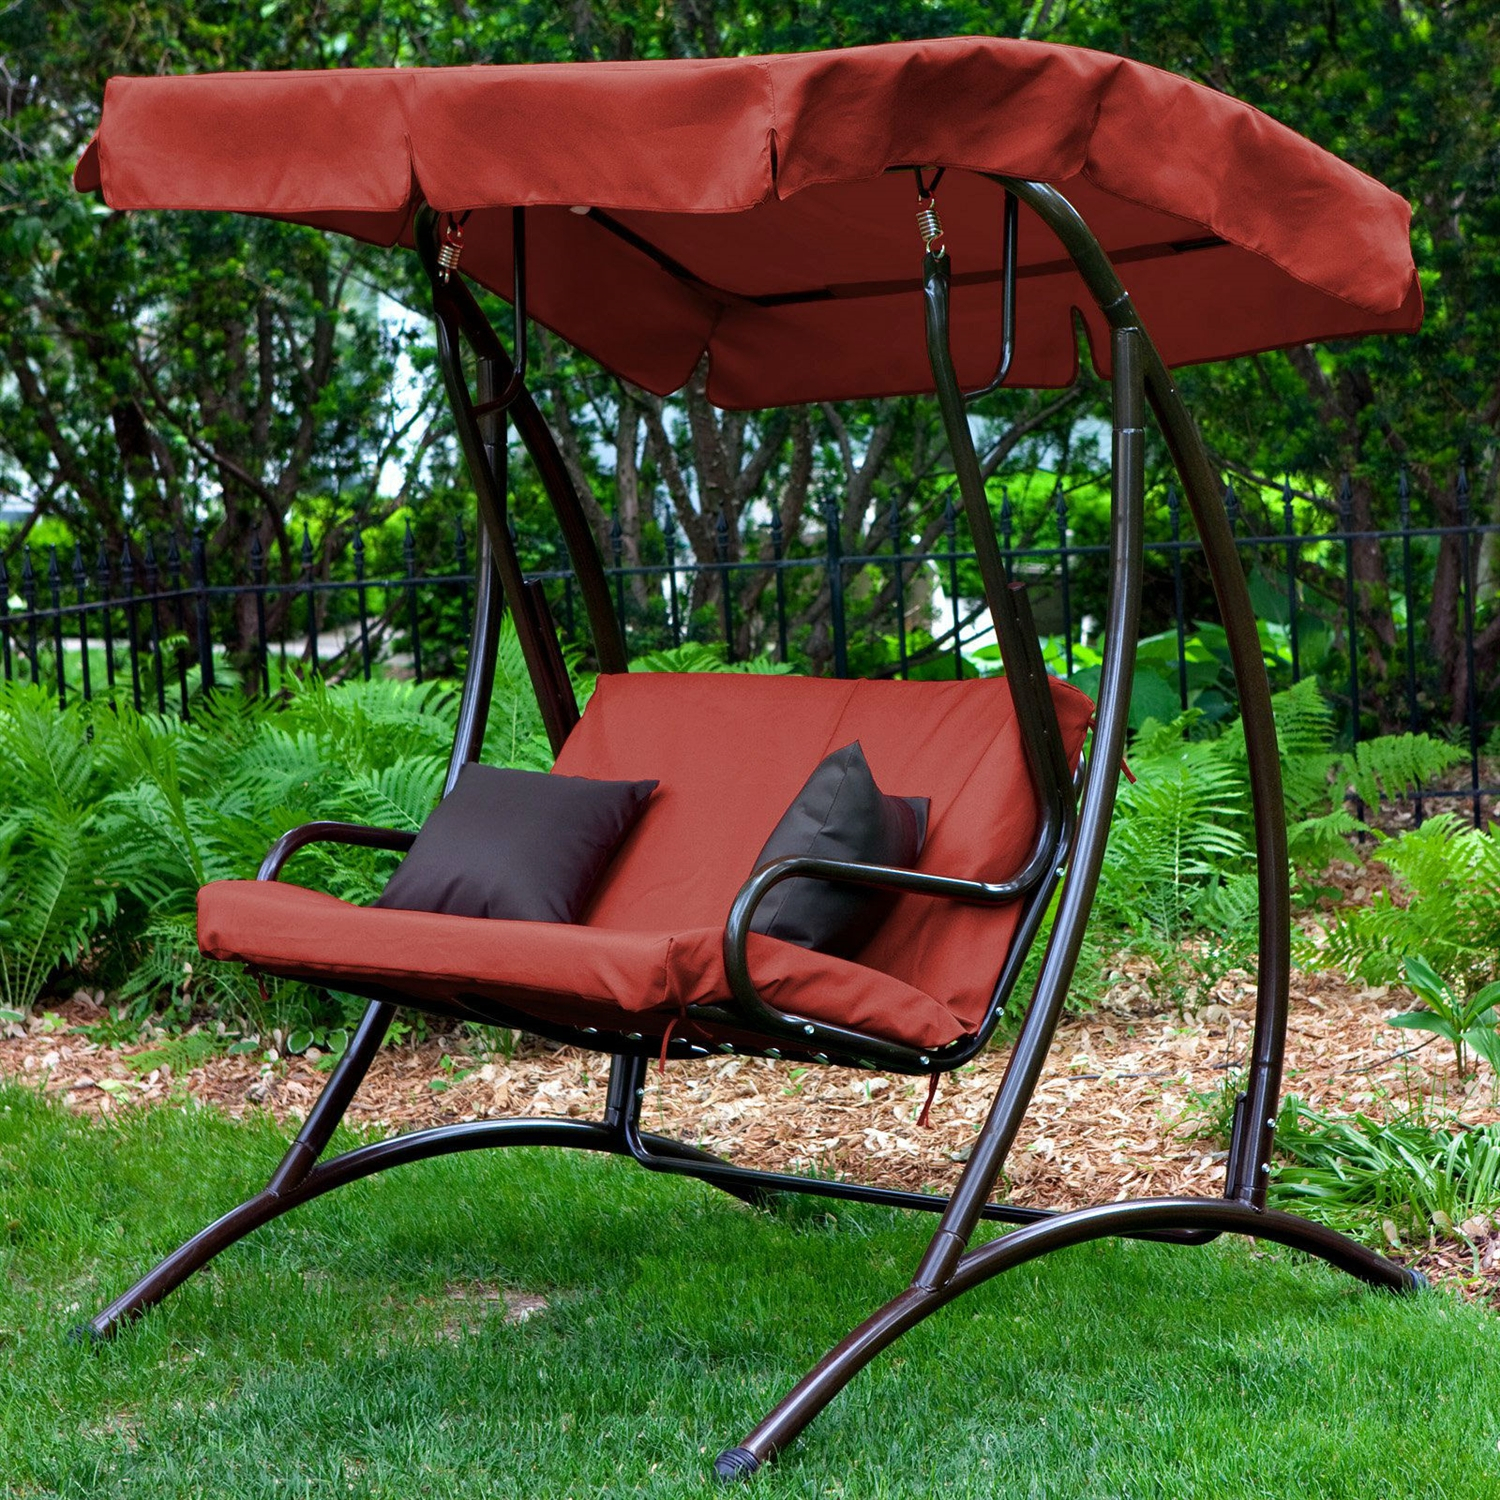 2 Seat Outdoor Porch Swing With Canopy In Terracotta Red For Porch Swings With Canopy (View 15 of 25)